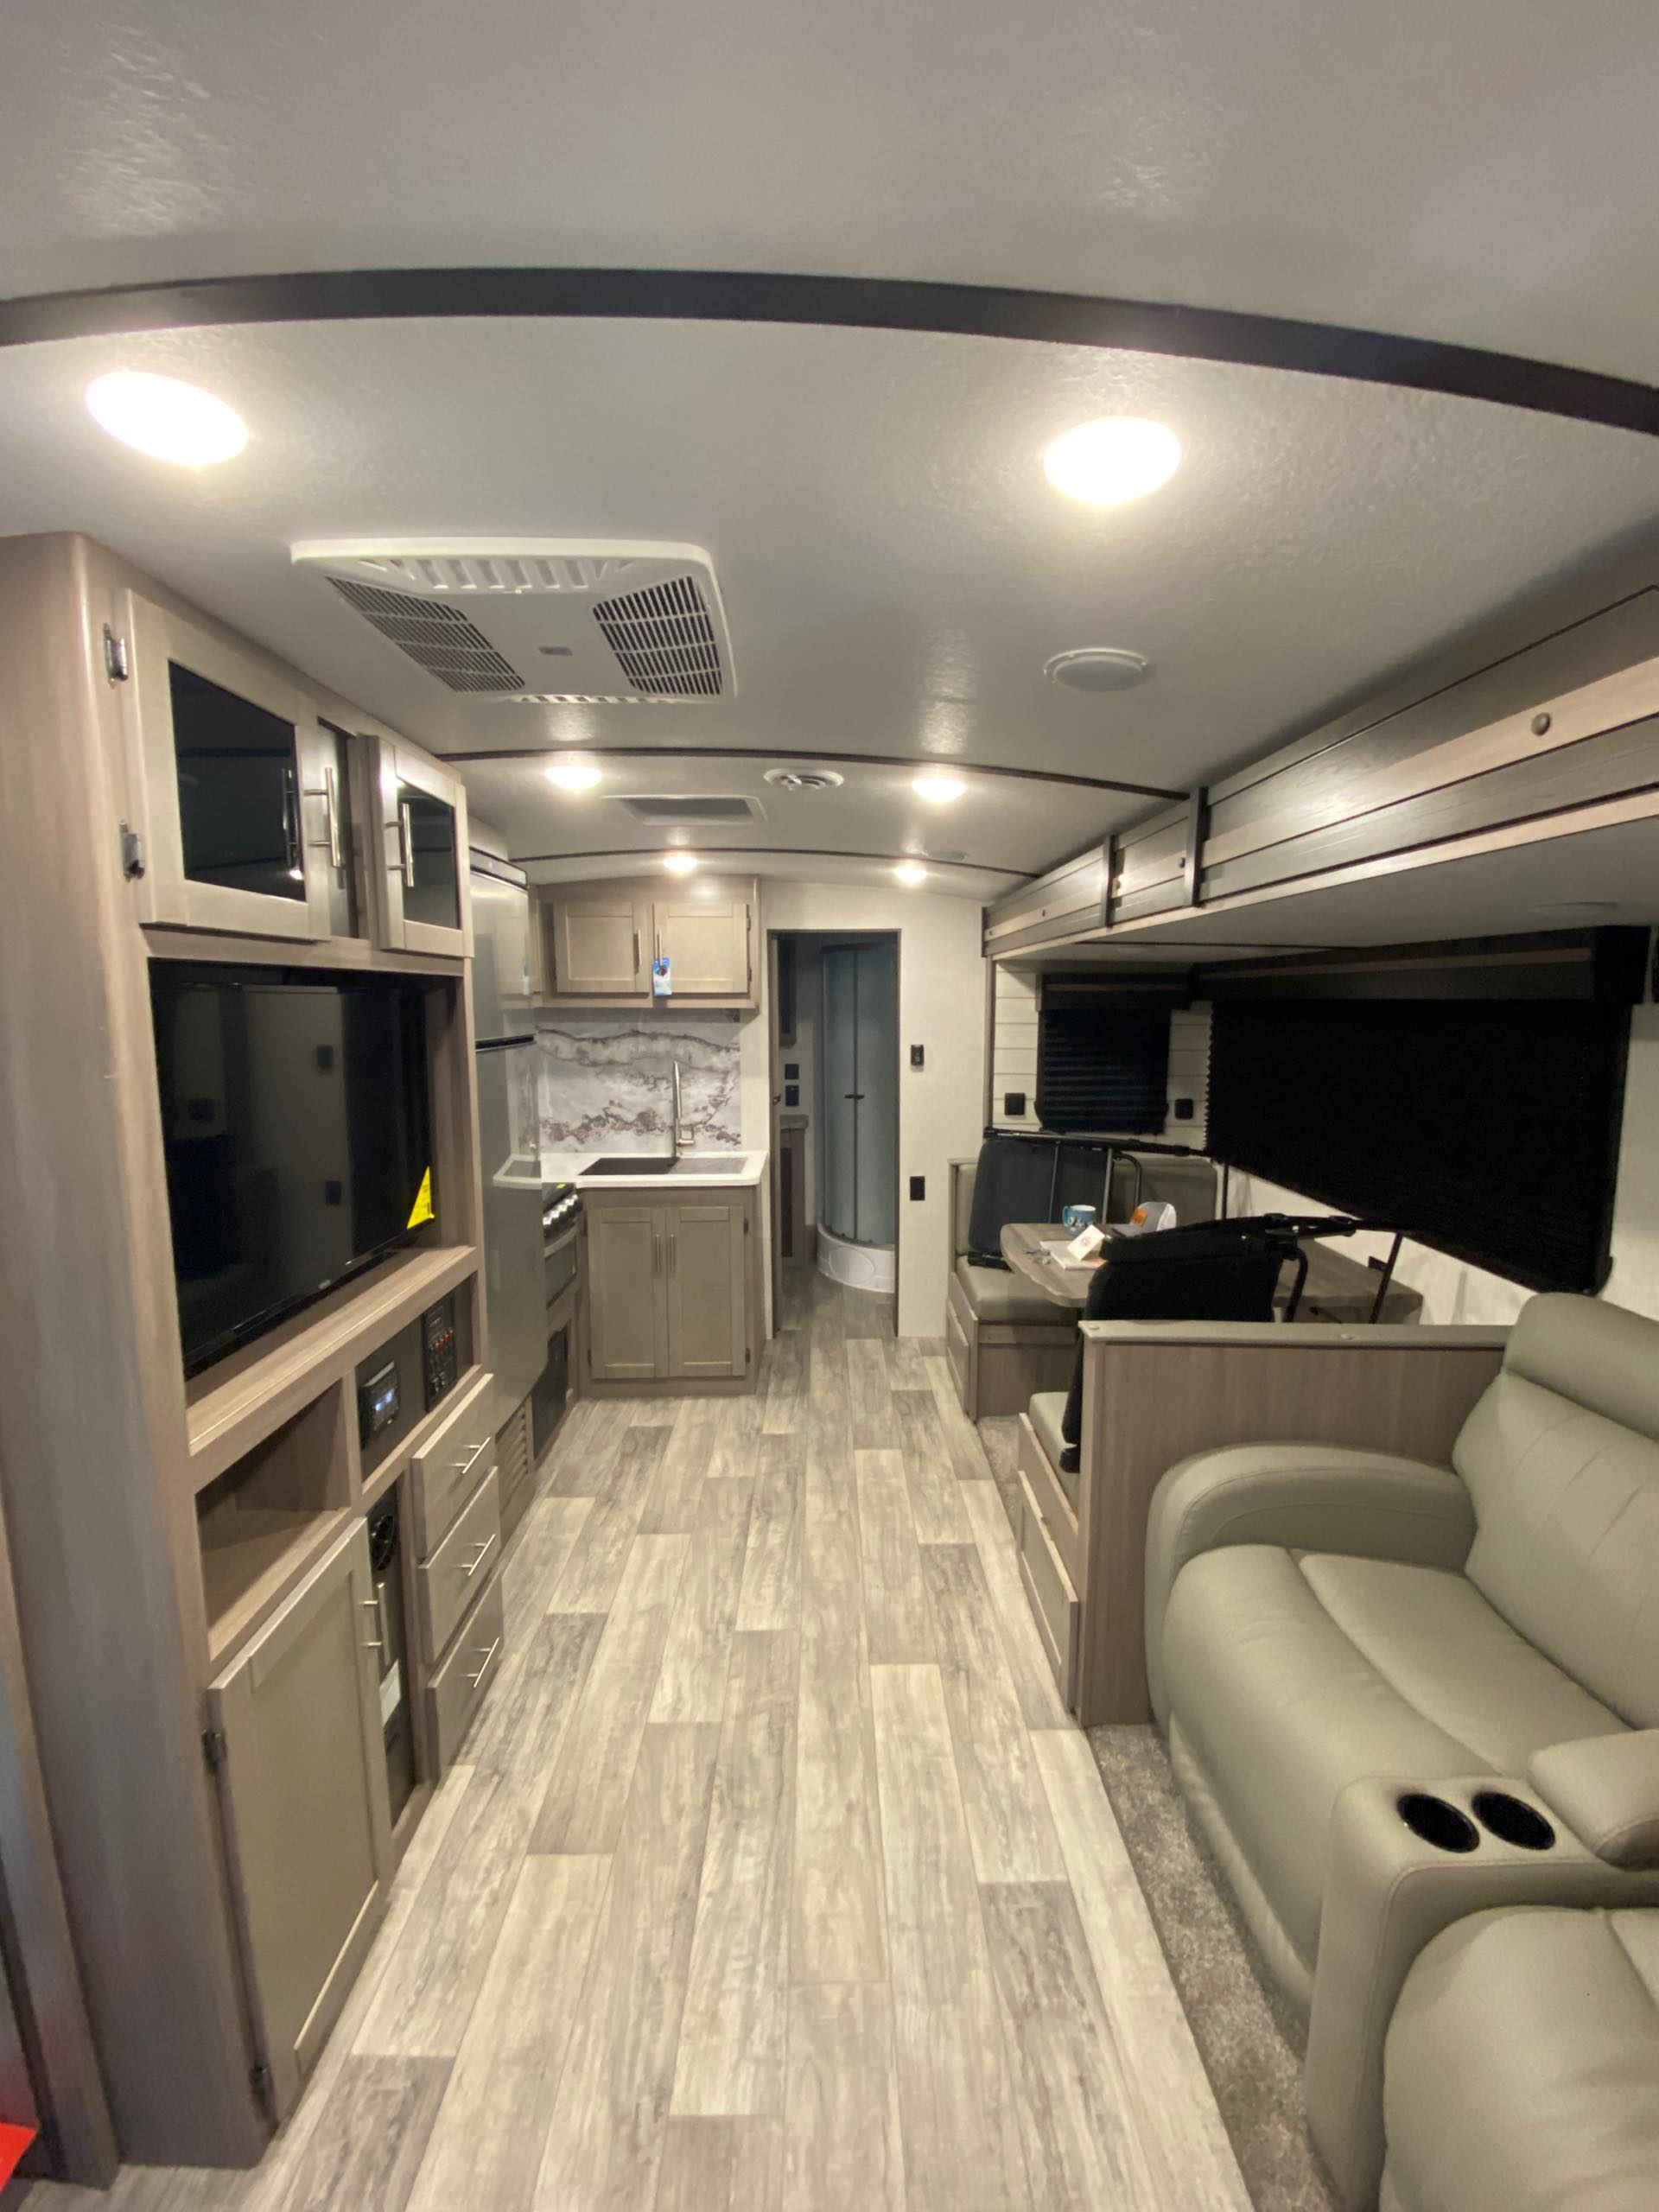 2021 CrossRoads Sunset Trail Super Lite SS253RB at Lee's Country RV